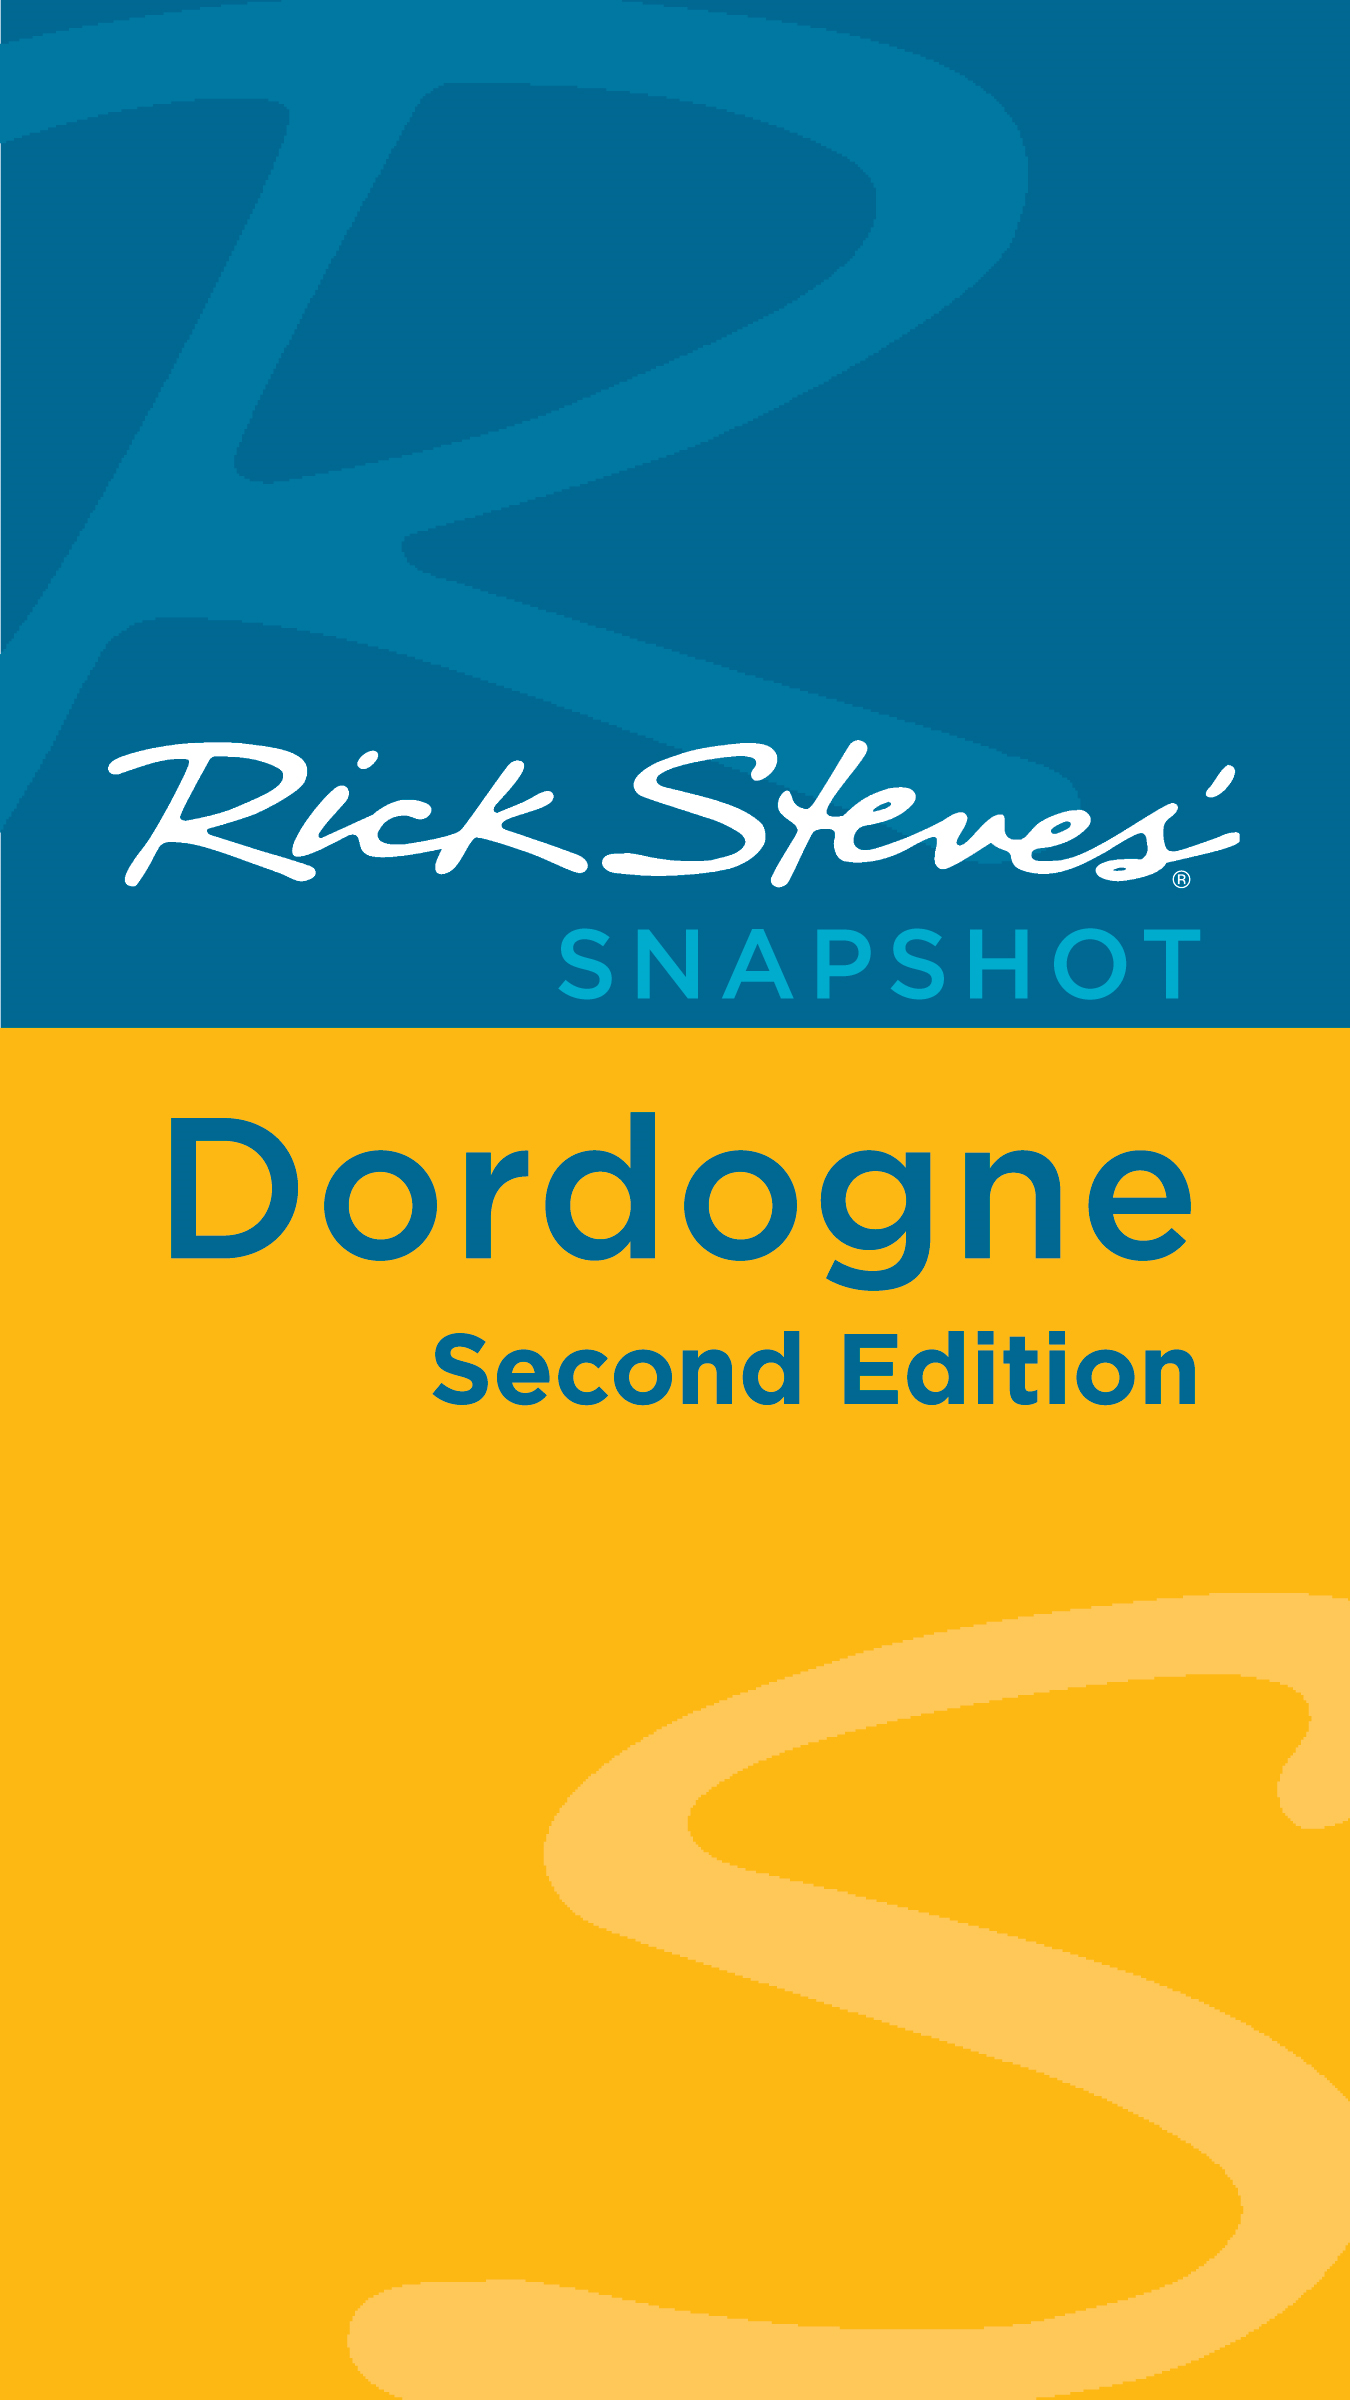 Rick Steves' Snapshot Dordogne By: Rick Steves,Steve Smith